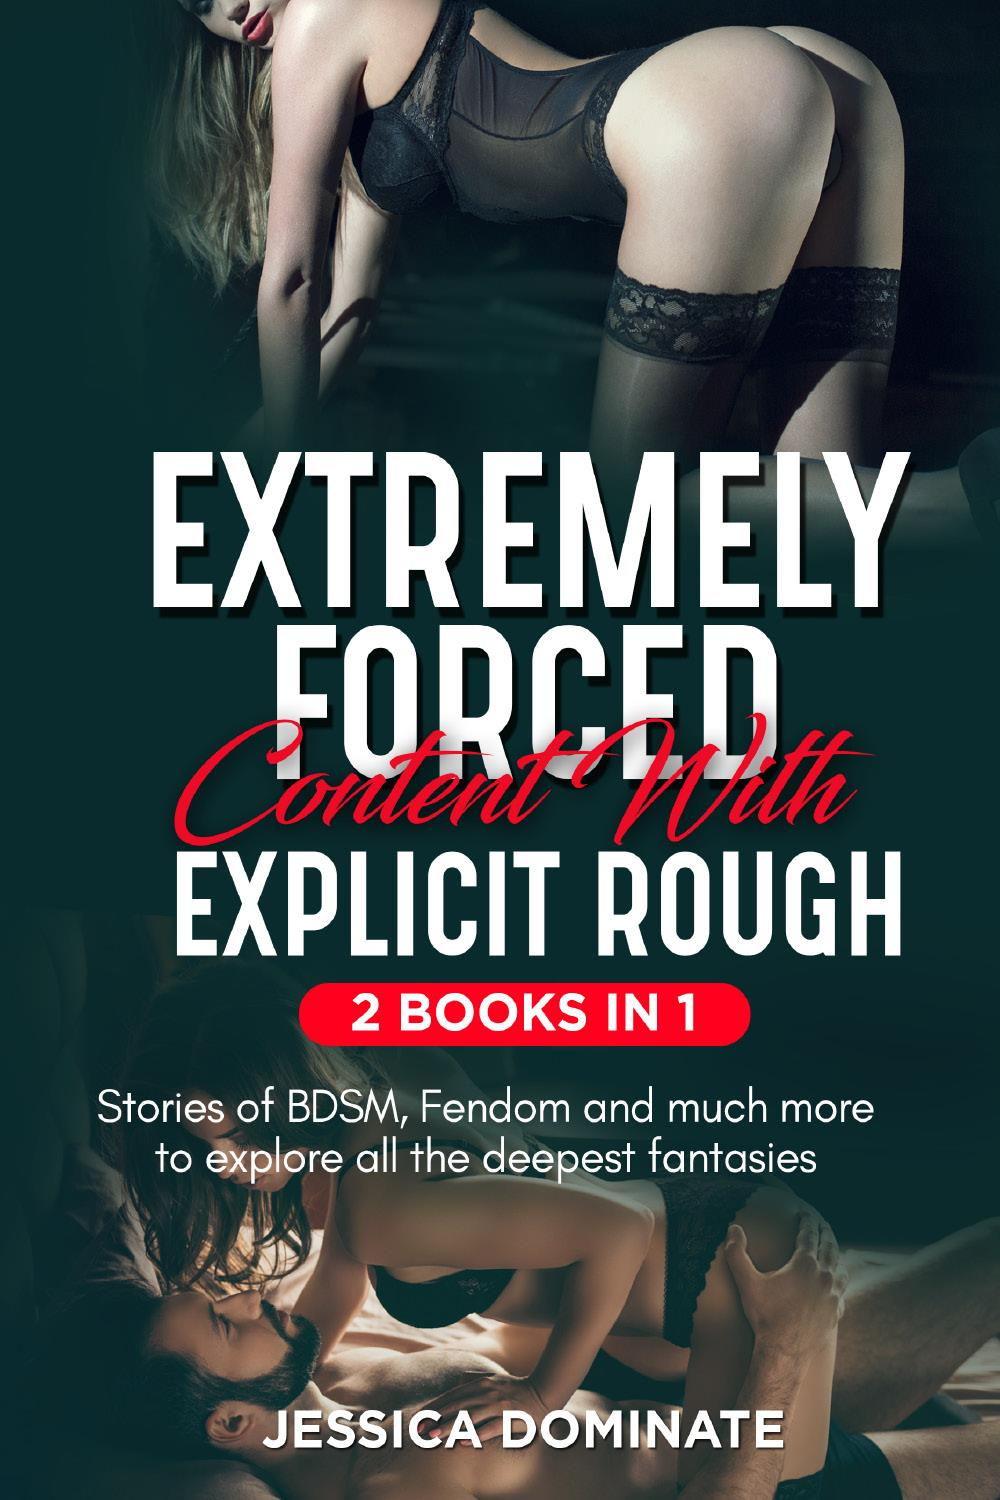 Extremely Forced Content With Explicit Rough (2 Books in 1). Stories of BDSM, Fendom and much more to explore all the deepest fantasies!